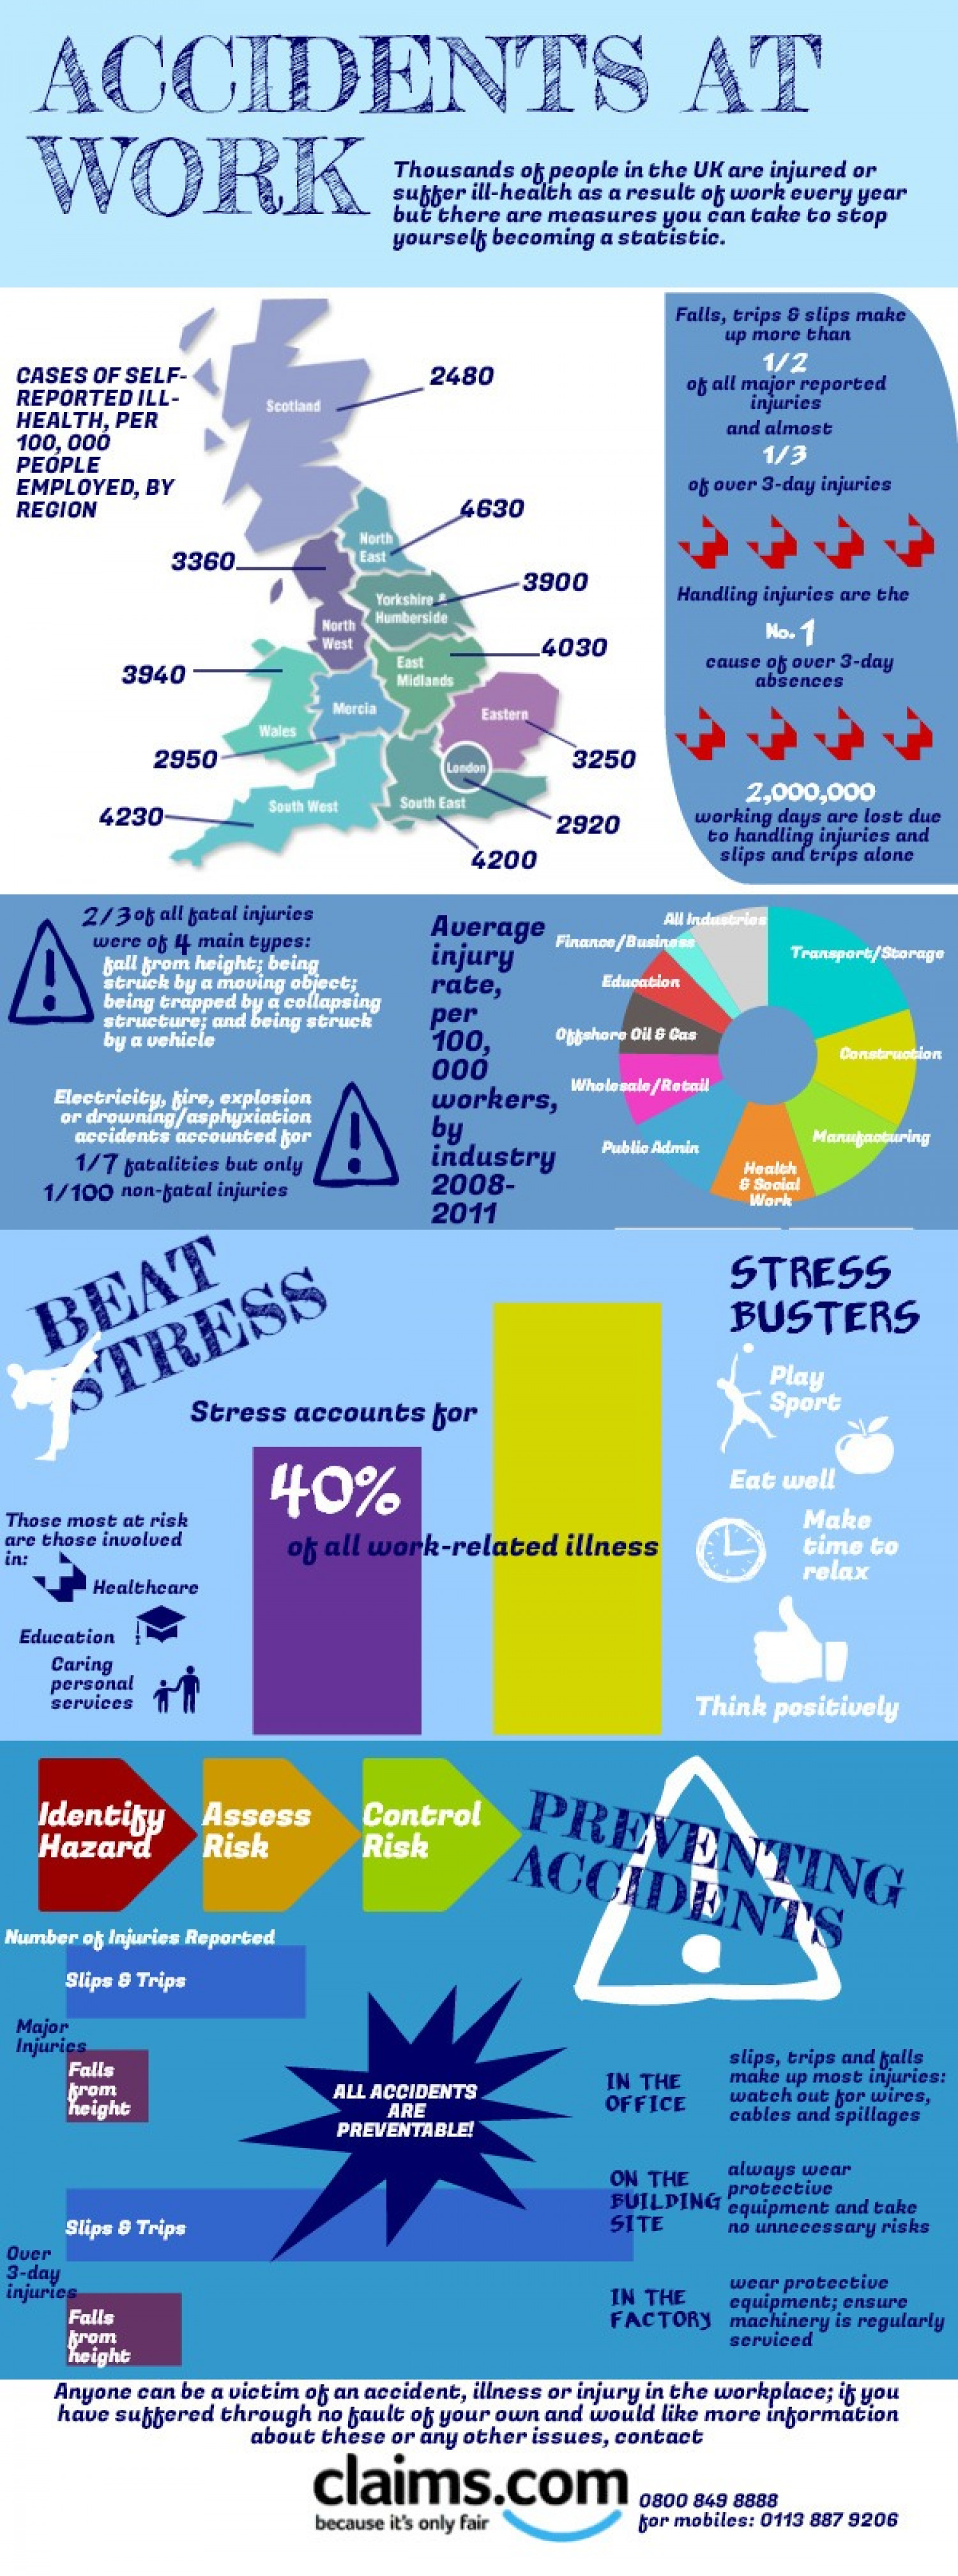 Focus on Accidents at Work Infographic